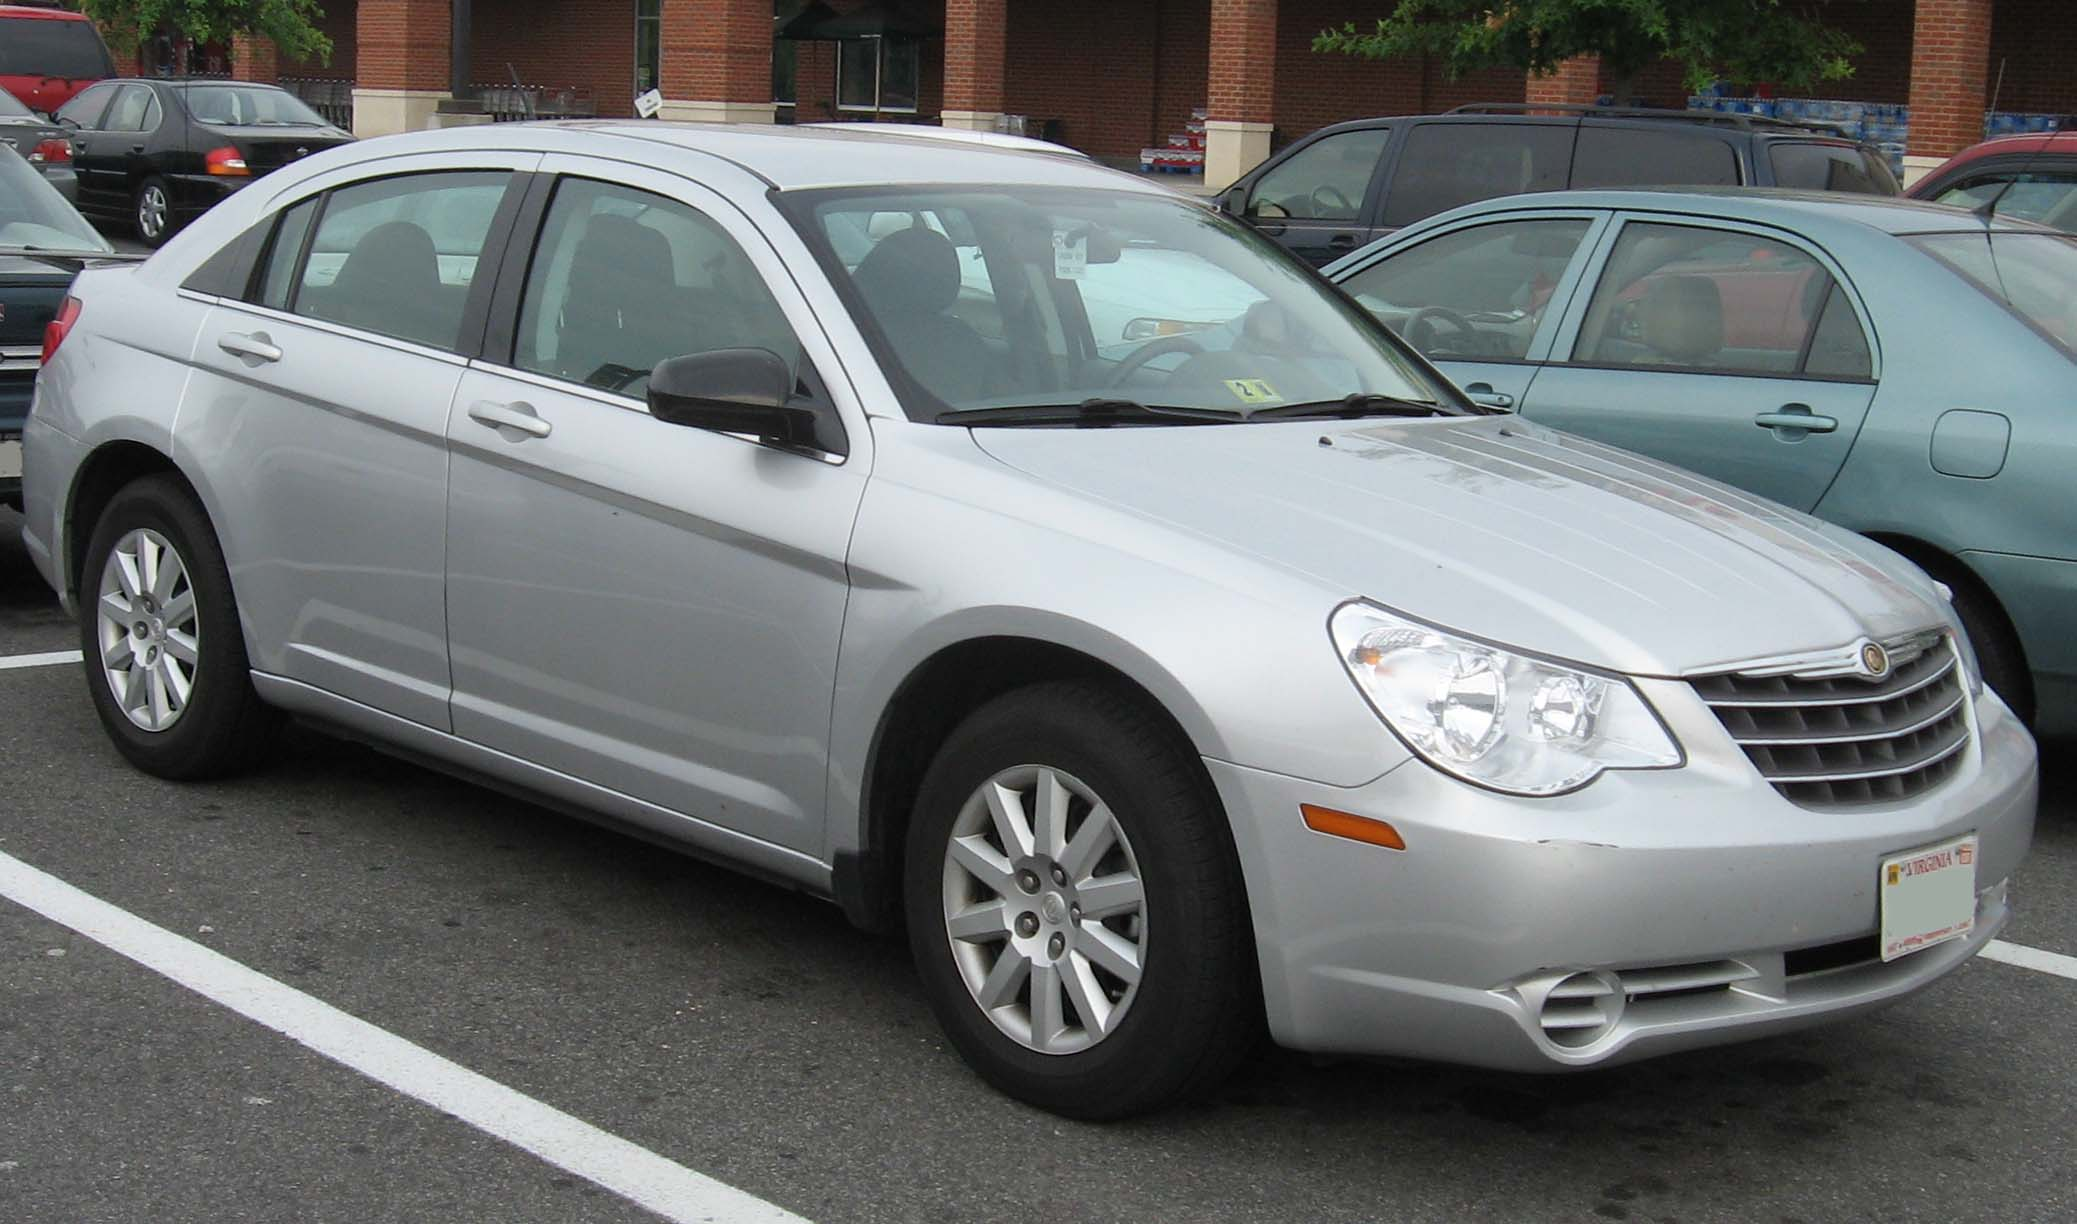 File 07 Chrysler Sebring Sedan Jpg Wikimedia Commons